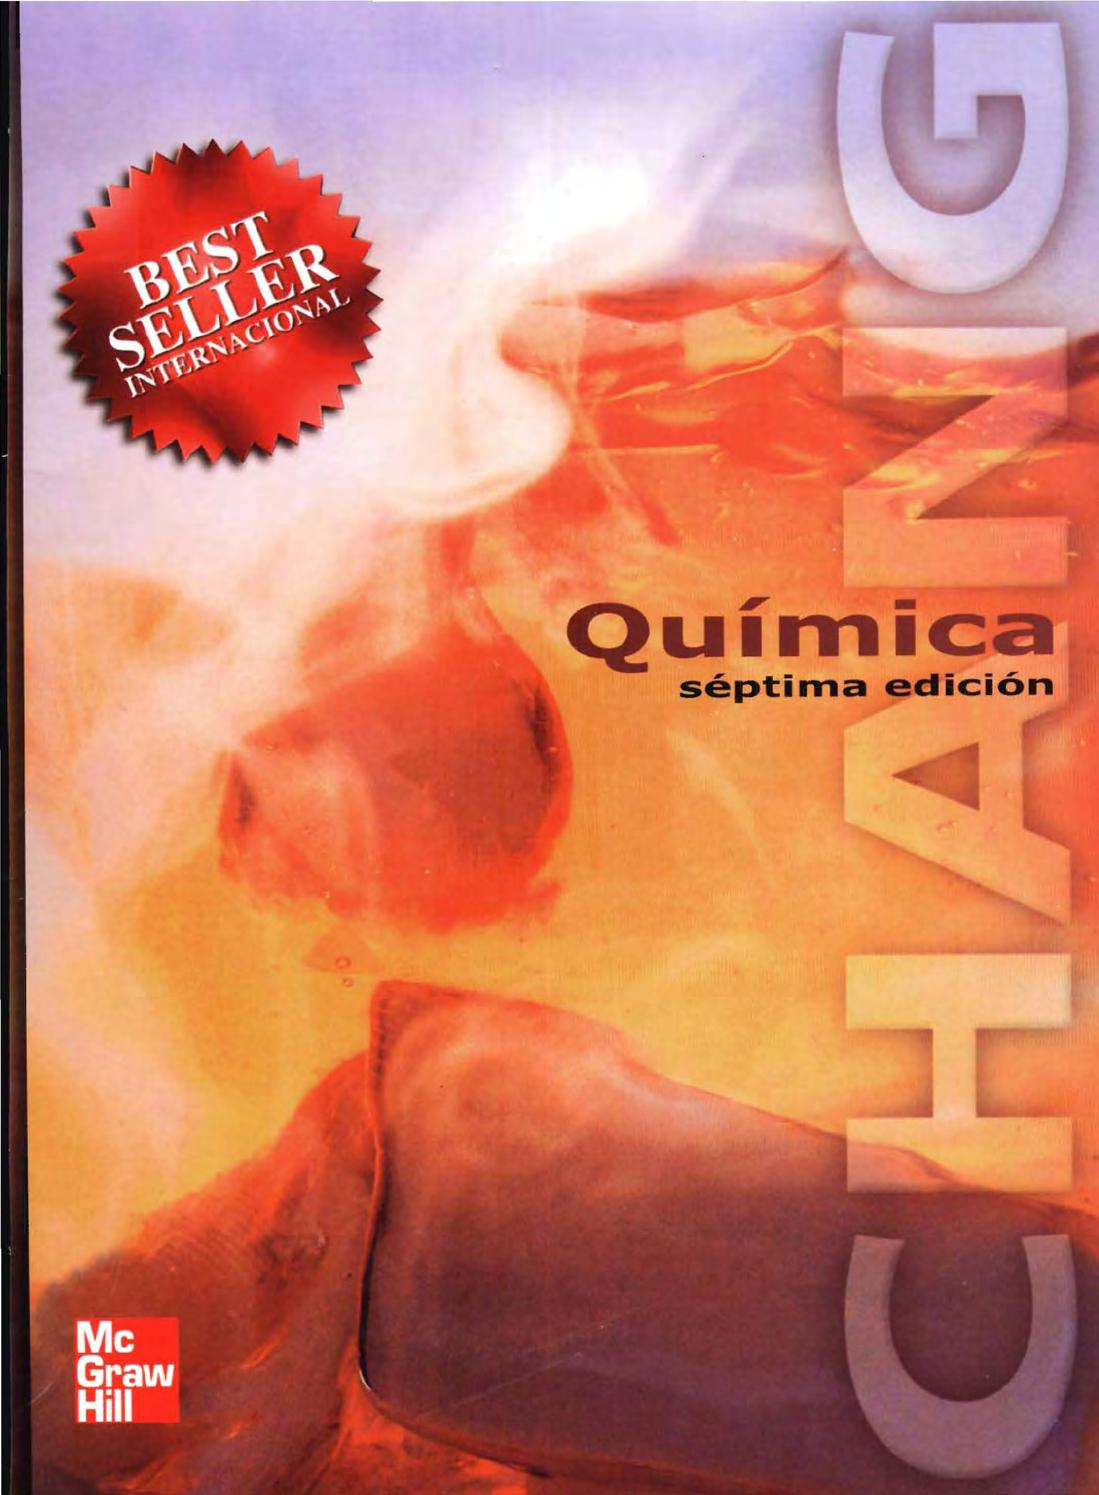 Raymond chang quimica general 7ma edicion part1 by for La quimica en la cocina libro pdf